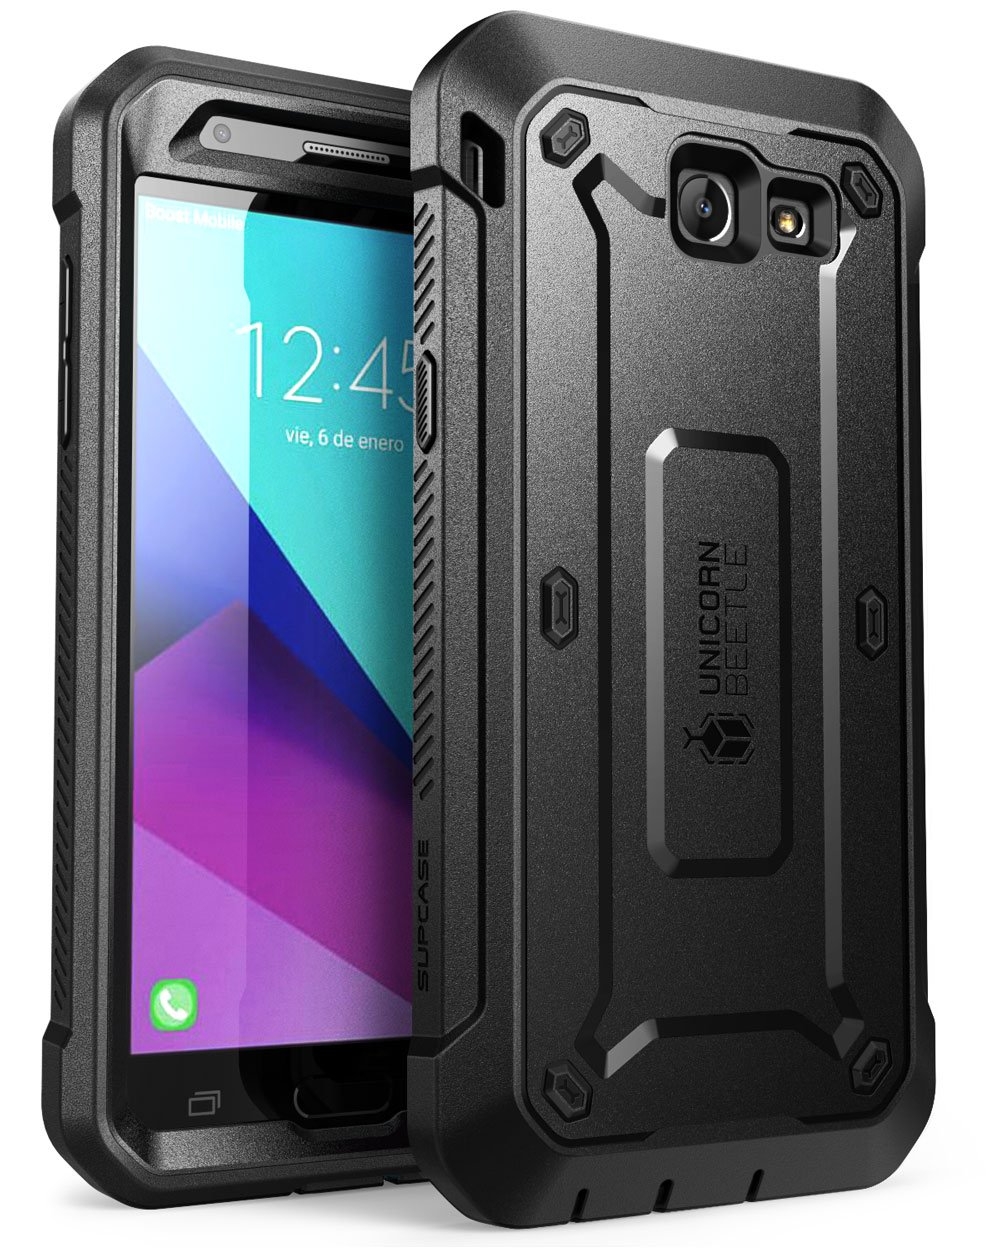 SupCase Samsung Galaxy J7 2017, Galaxy Halo Case, [UB Pro Series] Full-Body Rugged Holster with Built-in Screen Protector for Galaxy Halo/J7 2017 (SM-J727), Not fit J7 2018 (SM-J737) (Black) by SupCase